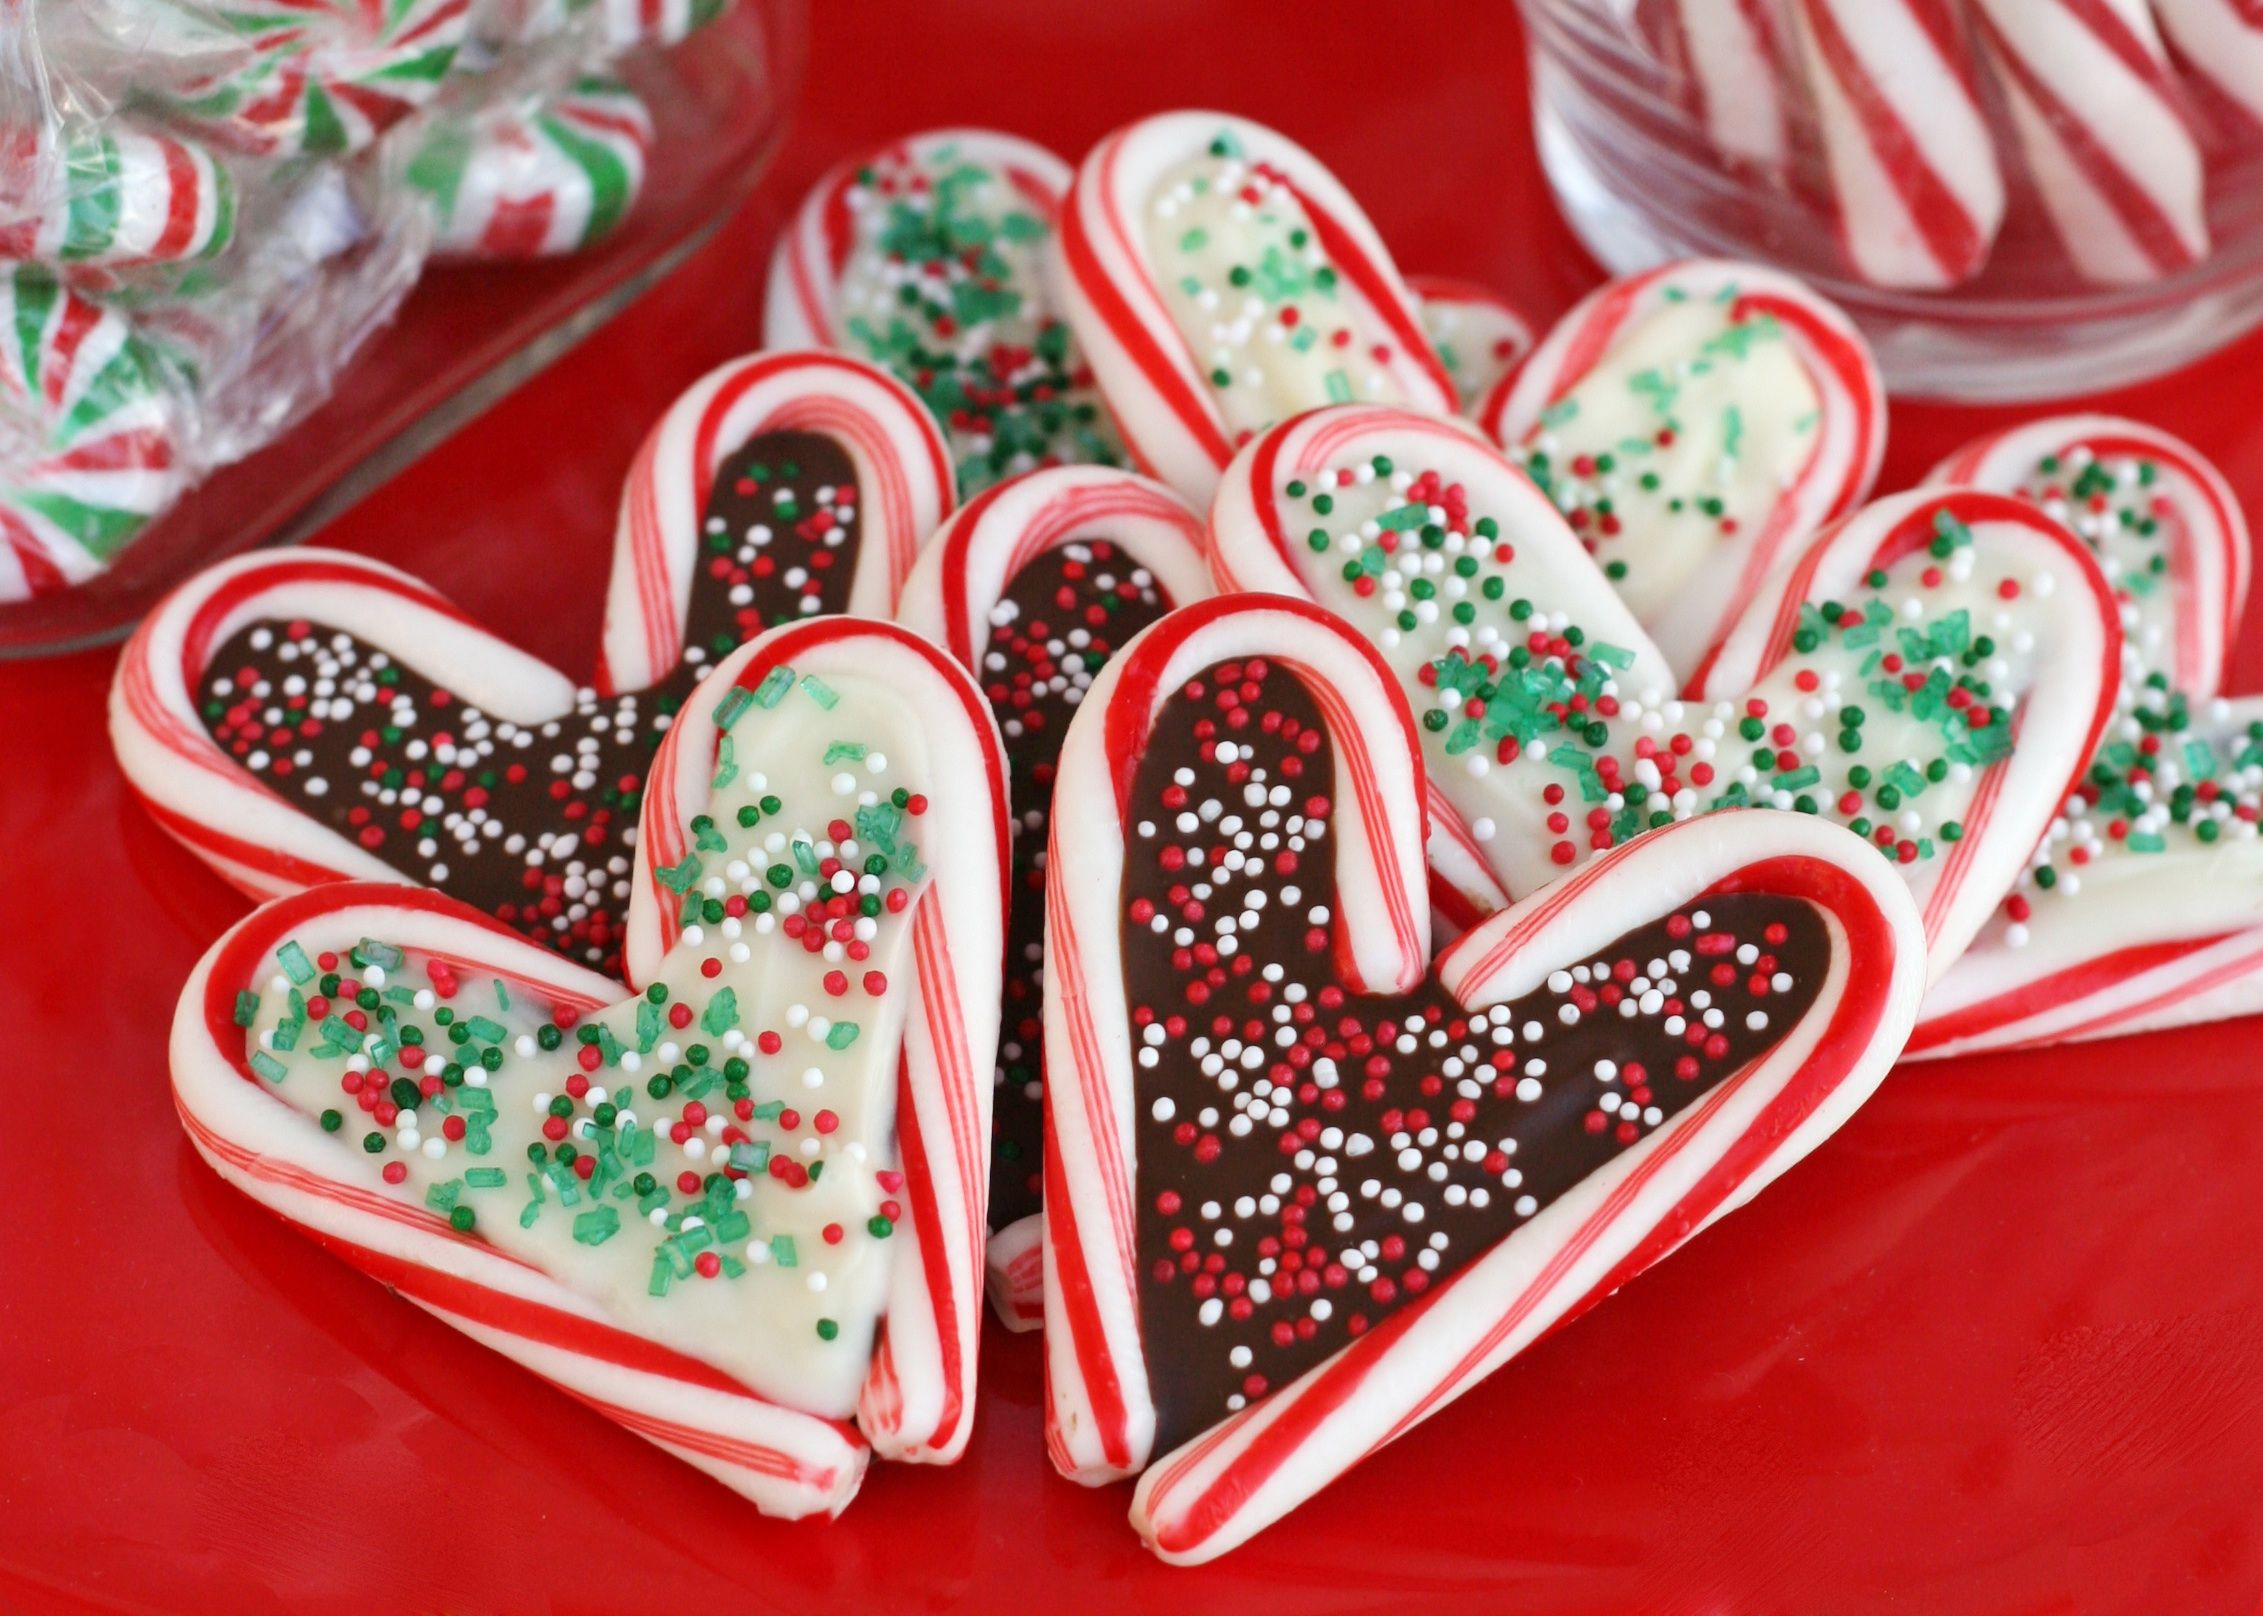 Edible candy cane christmas art holidaydreaming pinterest edible candy cane christmas art solutioingenieria Image collections